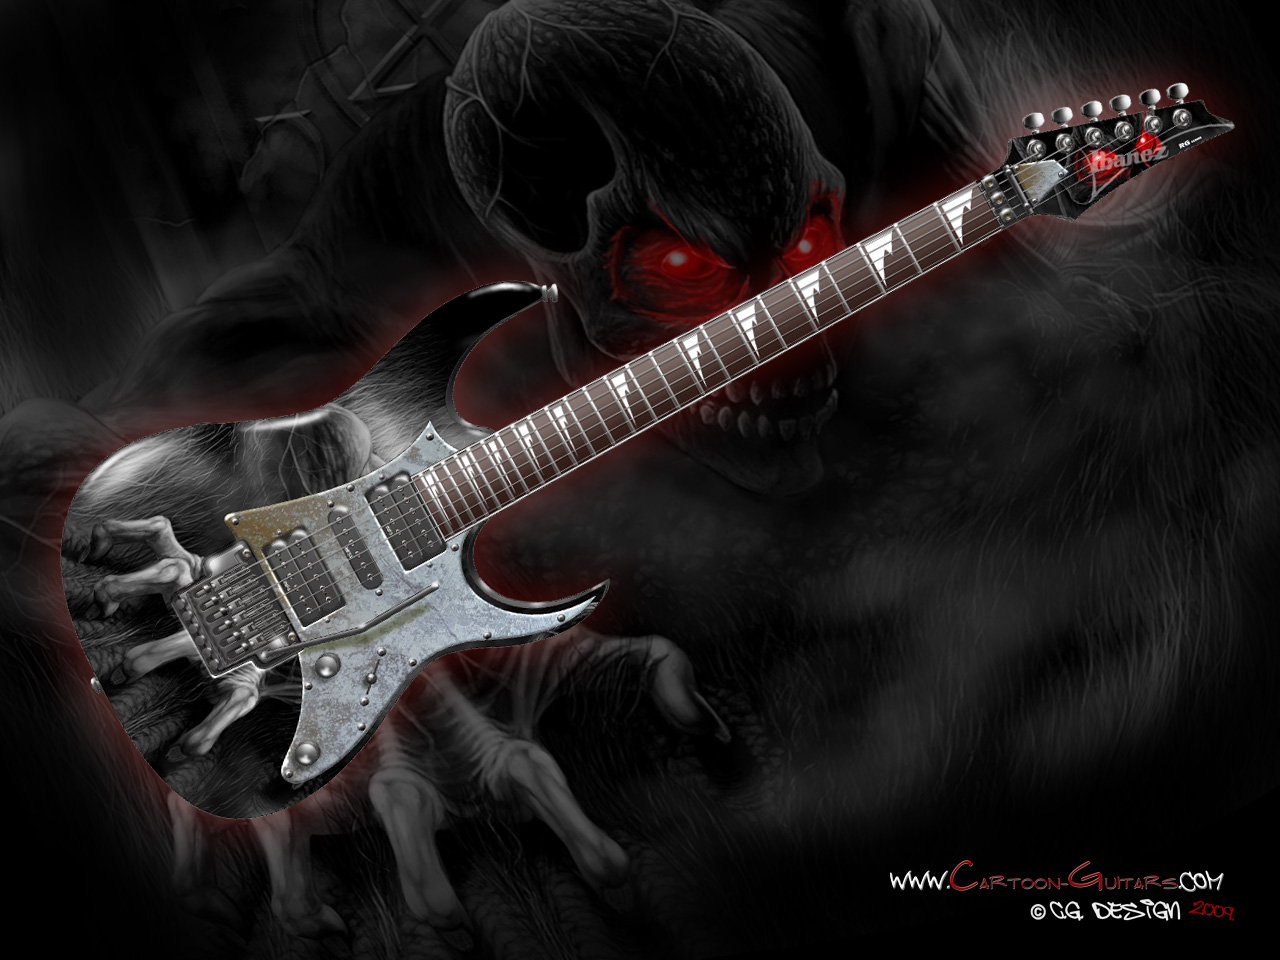 ibanez-rg350-custom-wallpaper_20090401_2001860338.jpg